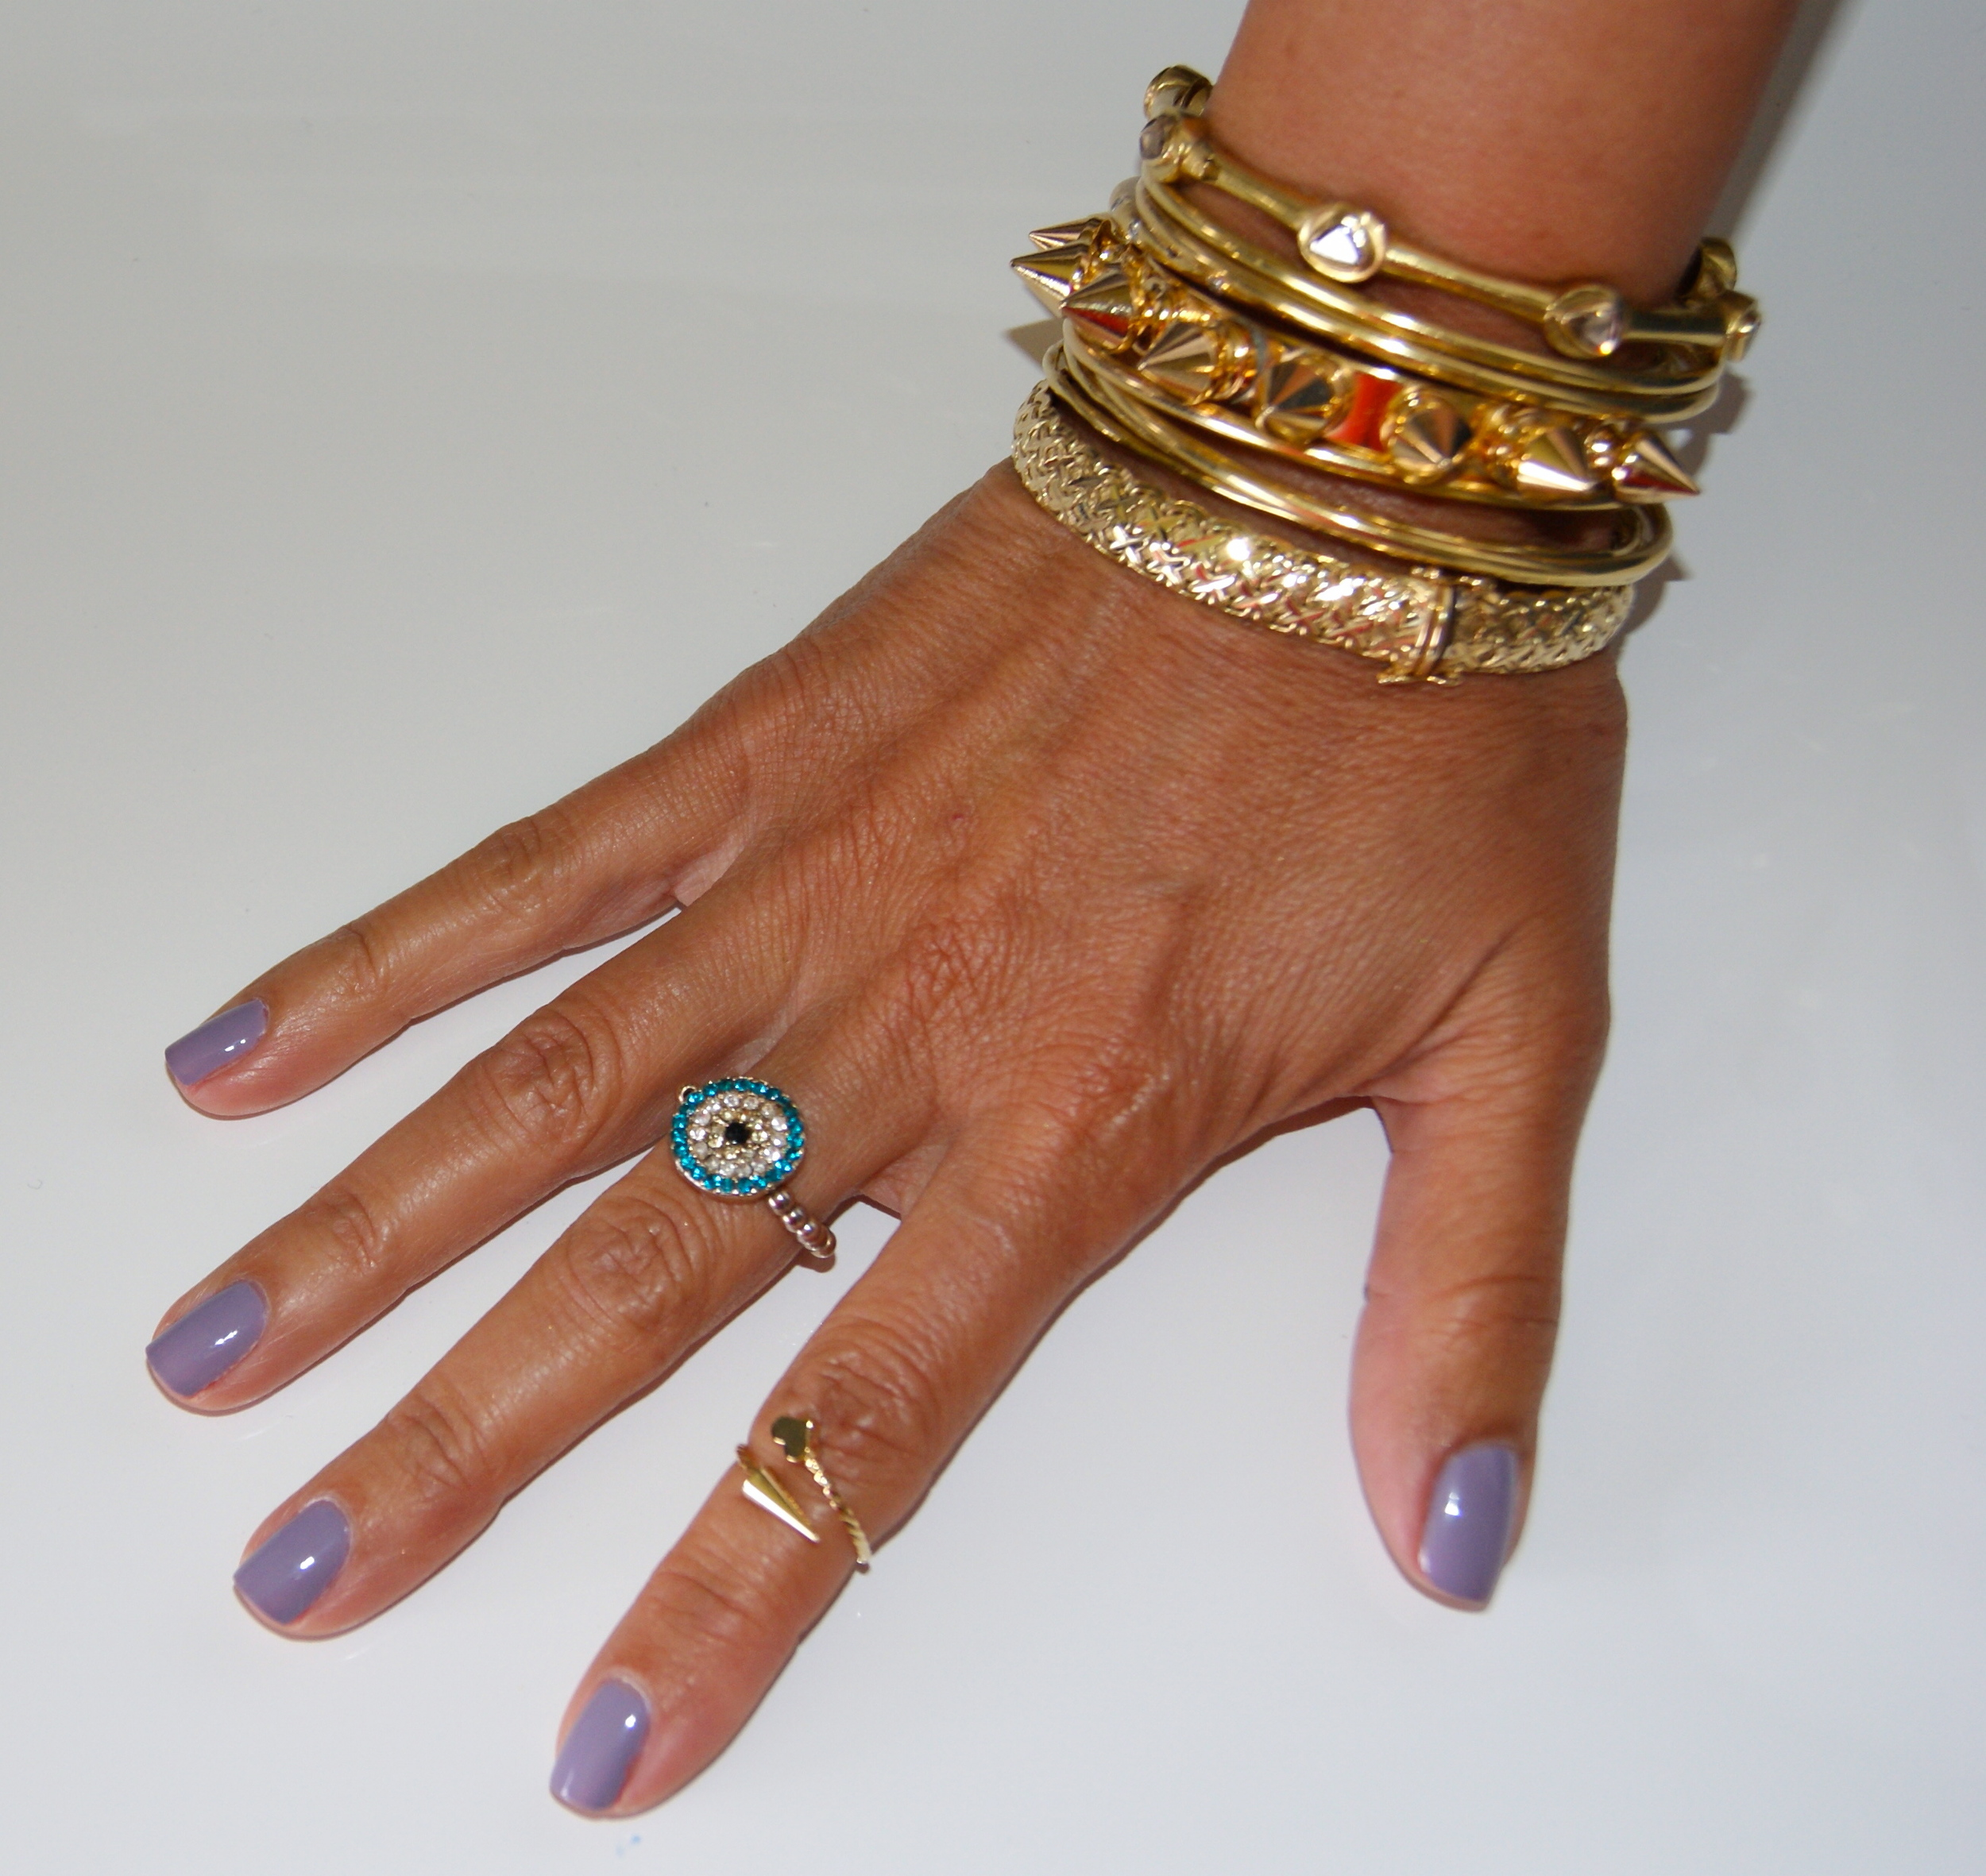 Spike bracelet by Courtney Lee Collection, $225  Other bracelets are fine jewelry by B. Coplan Collection, Etoile bangle by  Tiffany & Co. , and vintage. Rings: Flea market finds.  Nail polish: Bangle Jangle by Essie, 2.99